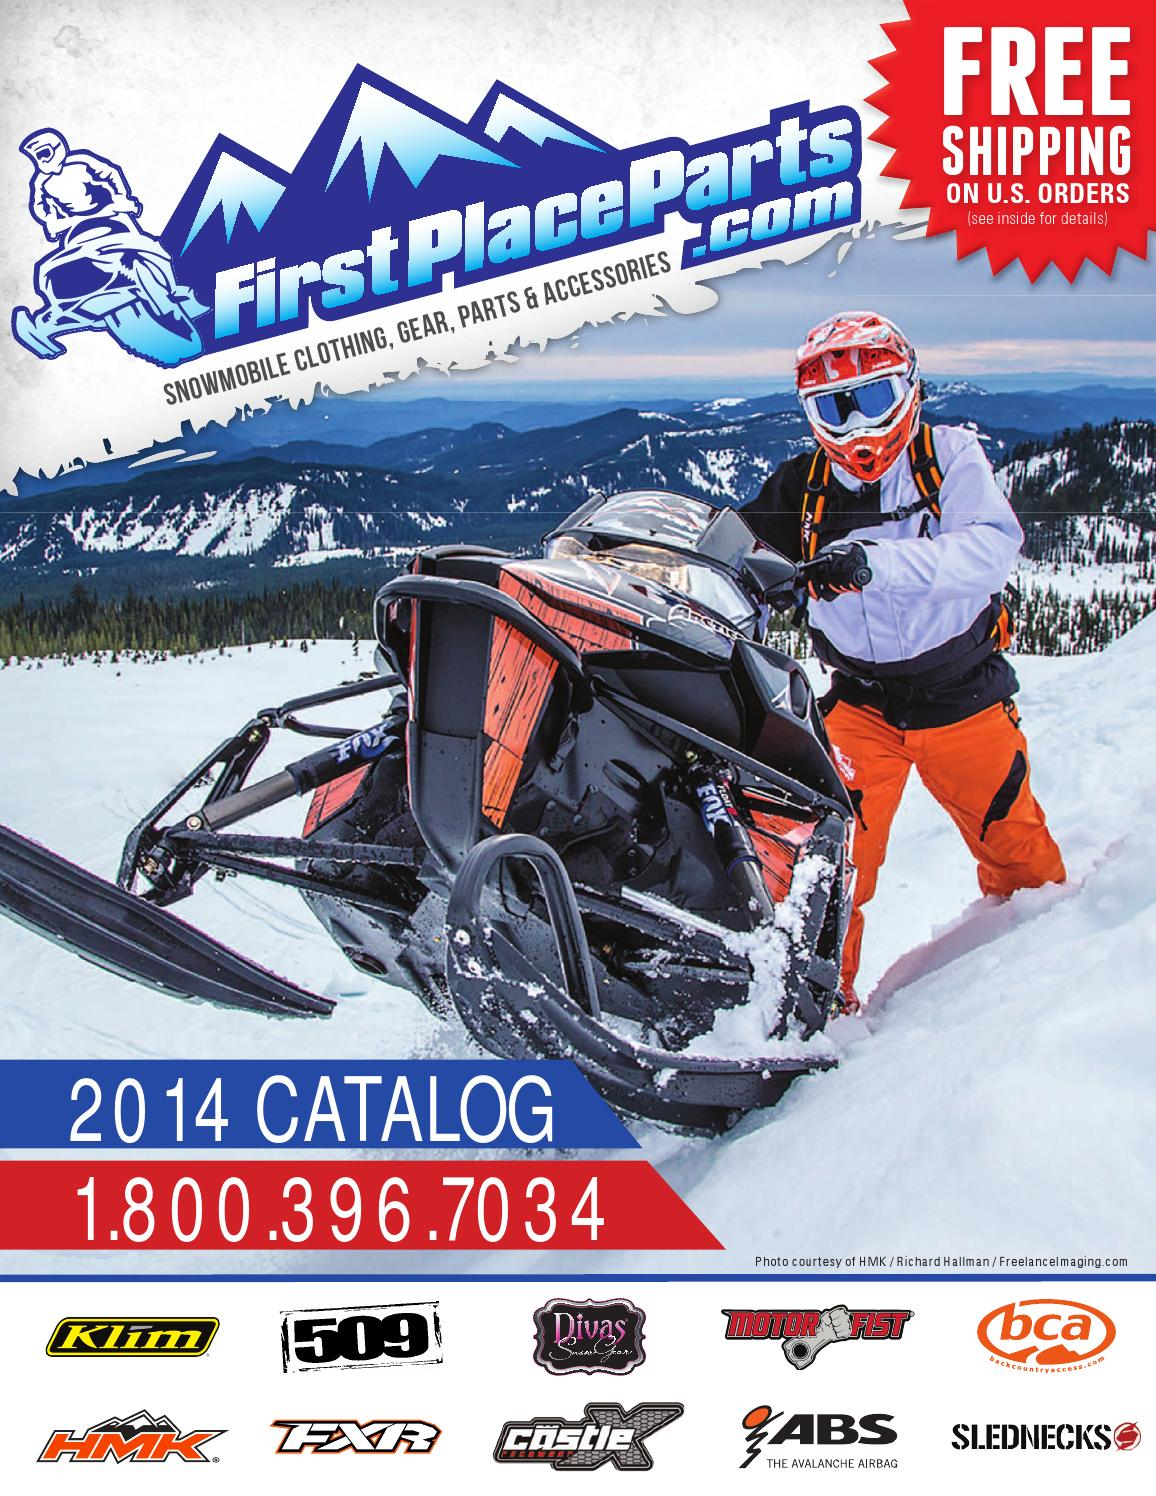 FXR Cold Stop Neck Gator Lightweight Breathable Wind Stop Snowmobile Snocross Grey//Orange One-Size